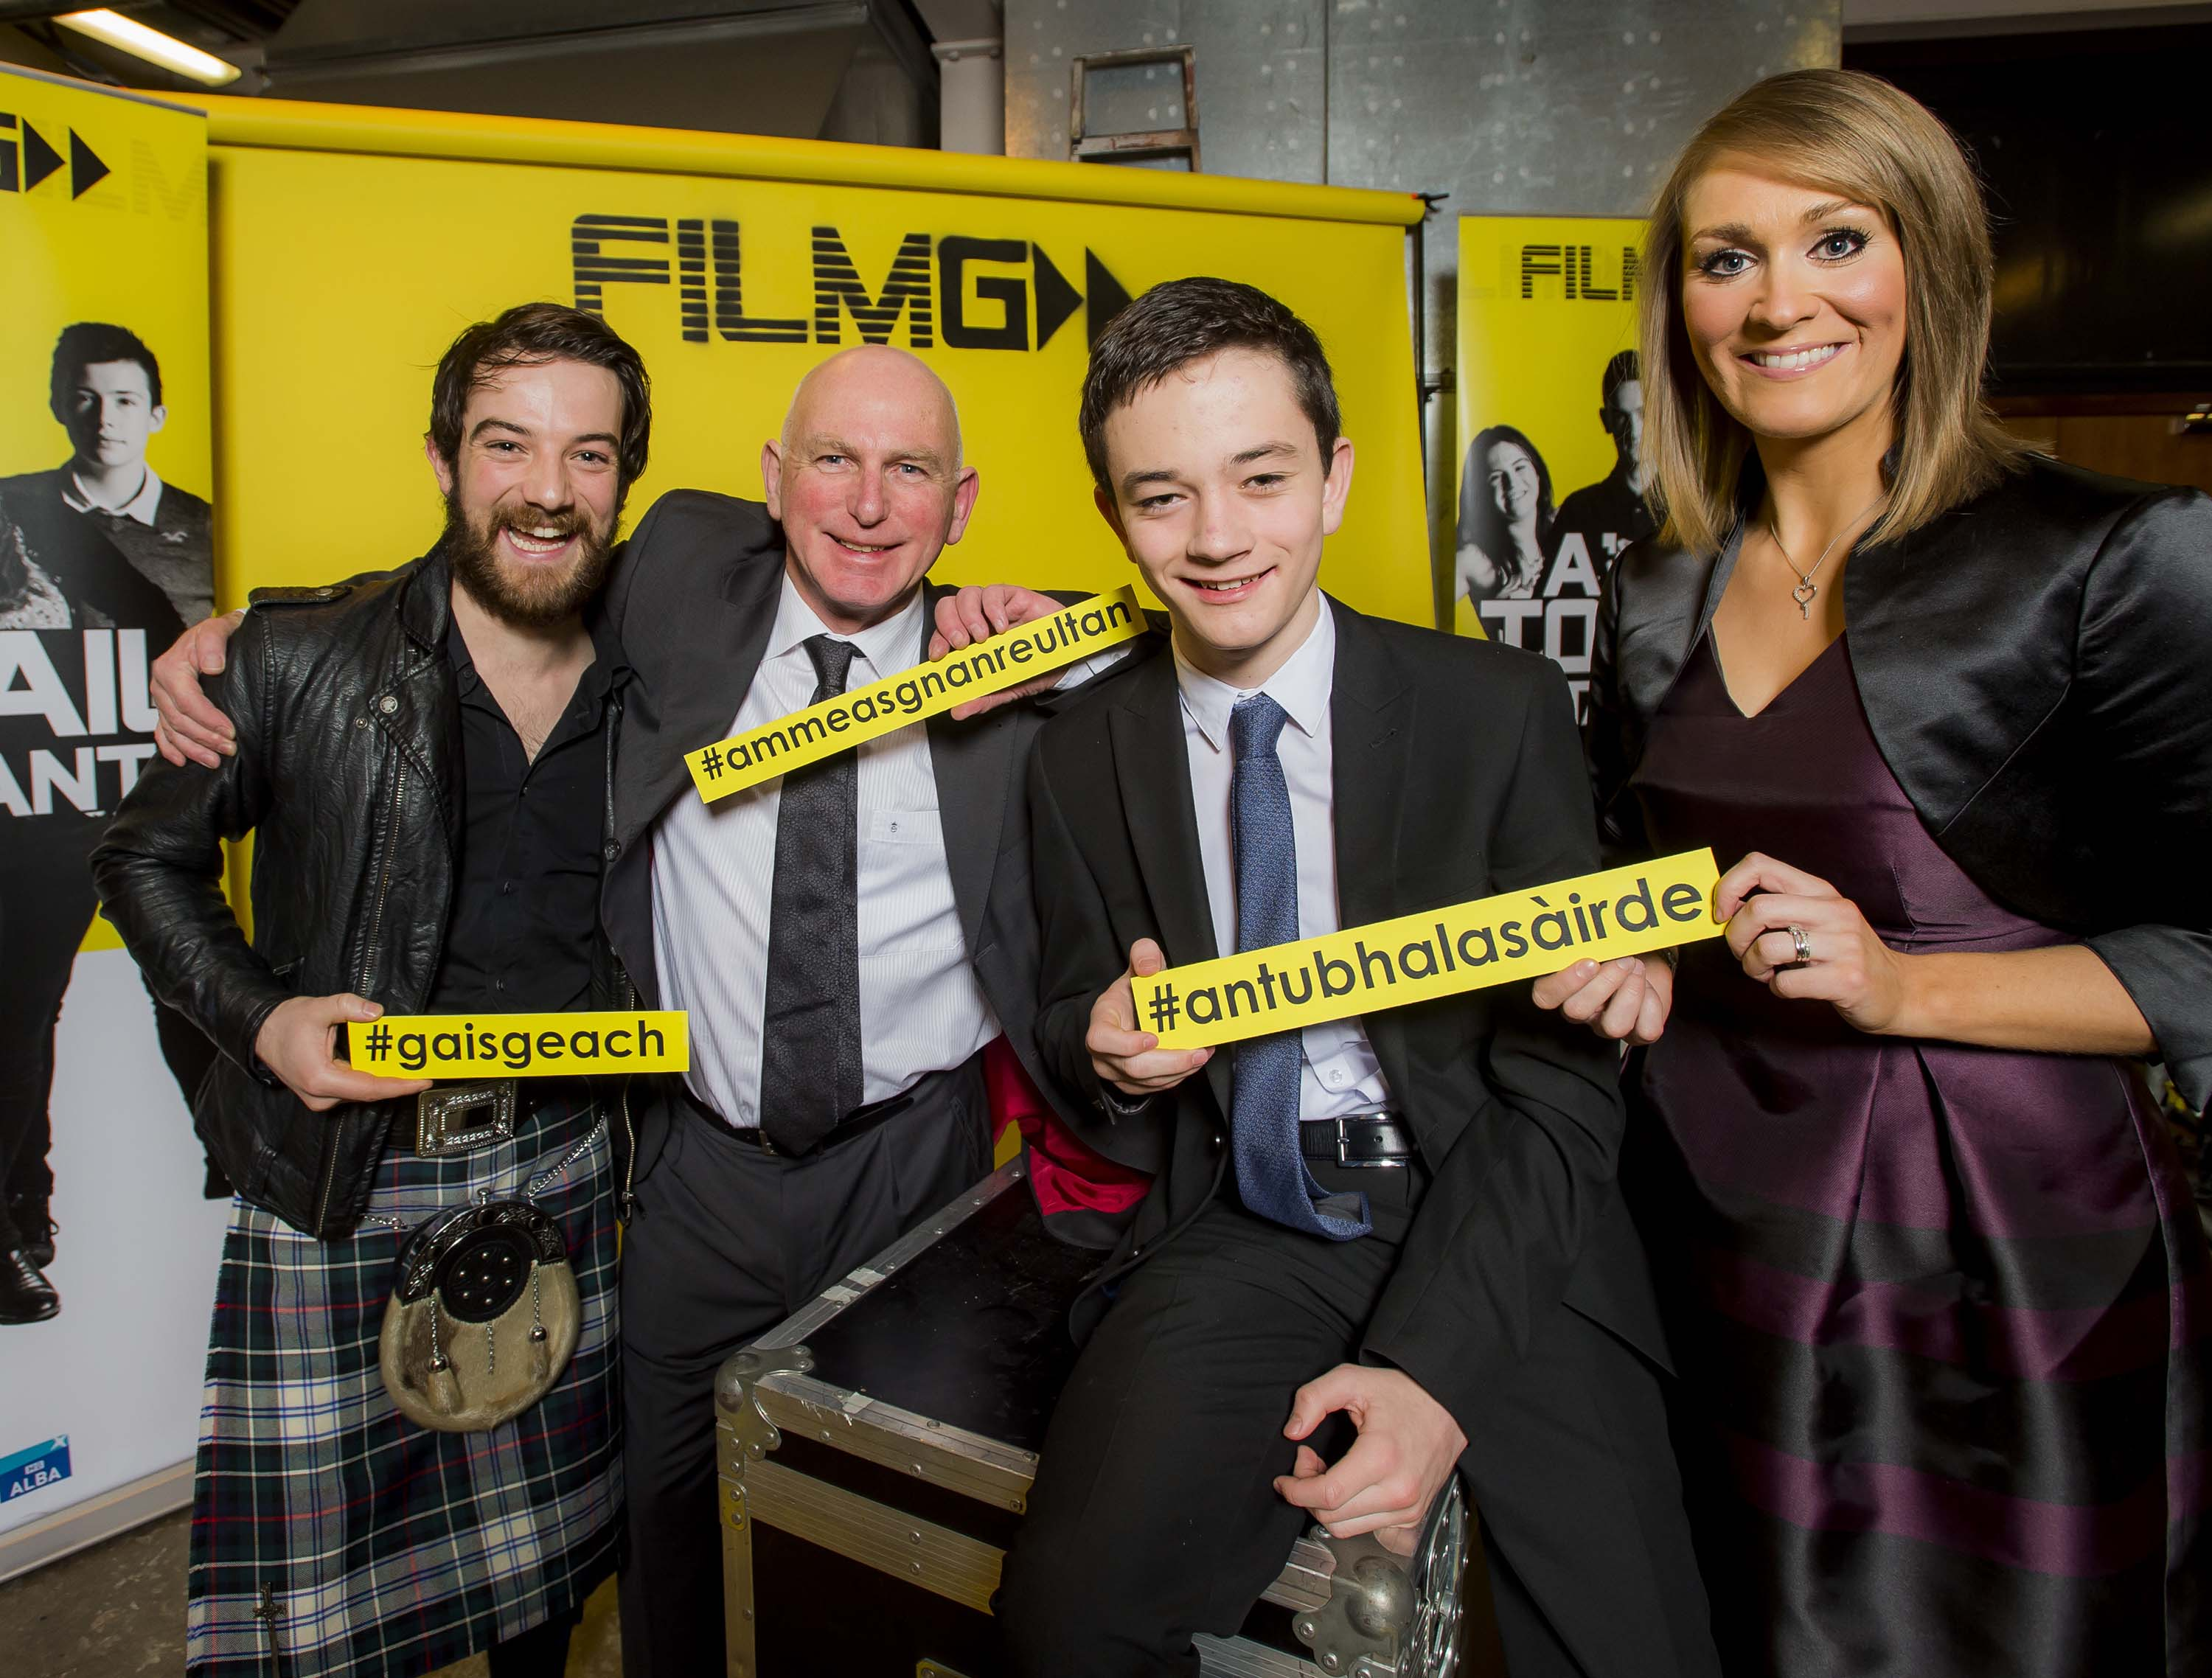 Media Release: Stars turn out for national Gaelic film ceremony, FilmG